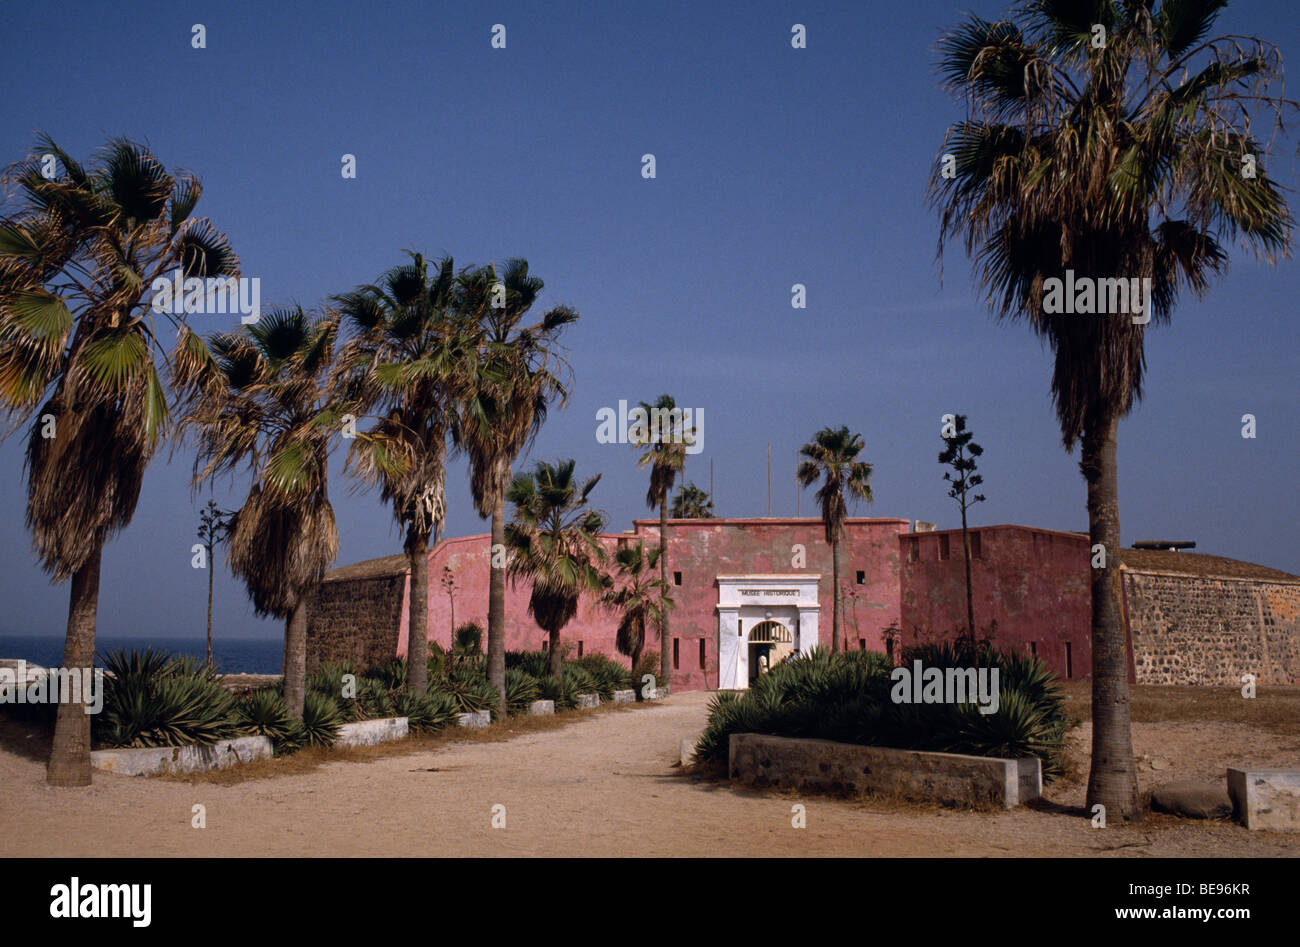 SENEGAL West Africa Goree Island Museum of Diaspora Fort d'Estrees with avenue of palm trees - Stock Image